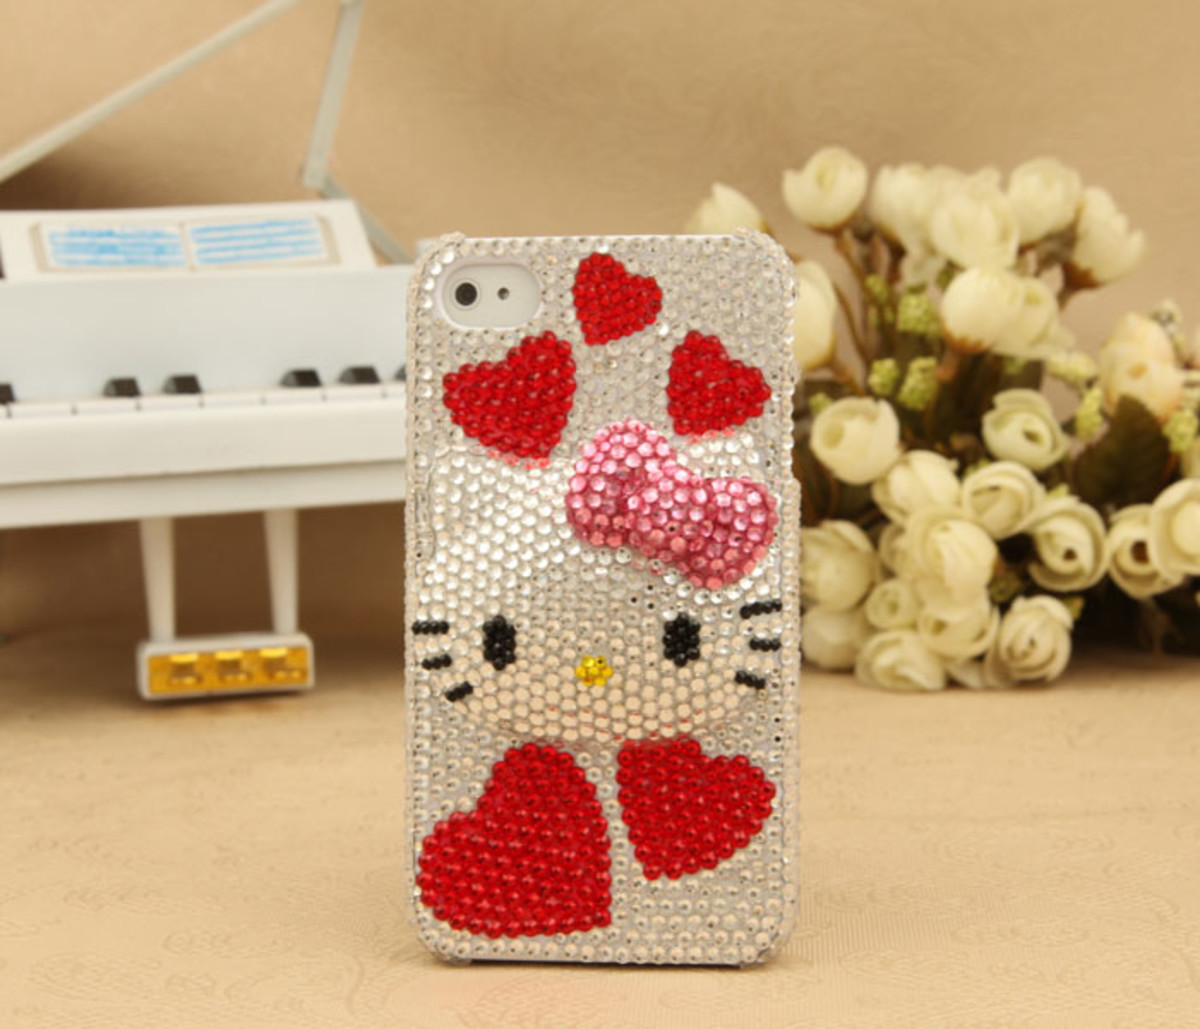 iPhone and iPod Hello Kitty Bling Red Hearts Crystals Back Case